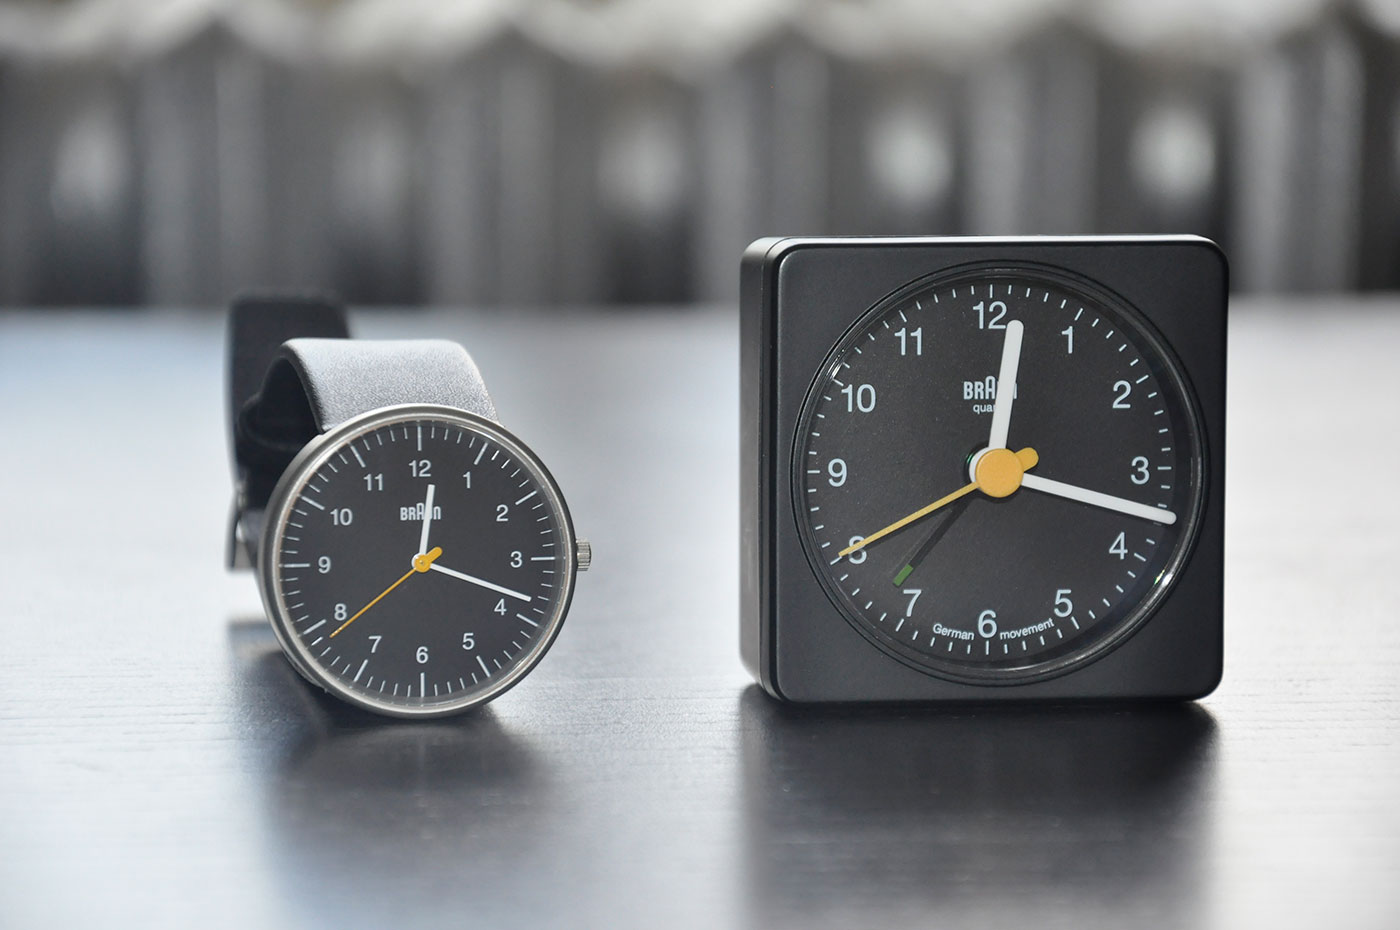 This is a side by side with the Braun alarm clock. We can easily see an immediate resemblance. The minute lines are longer on the hand watch, which is I like. I do wish that the hour/minute hands were slightly wider in size.